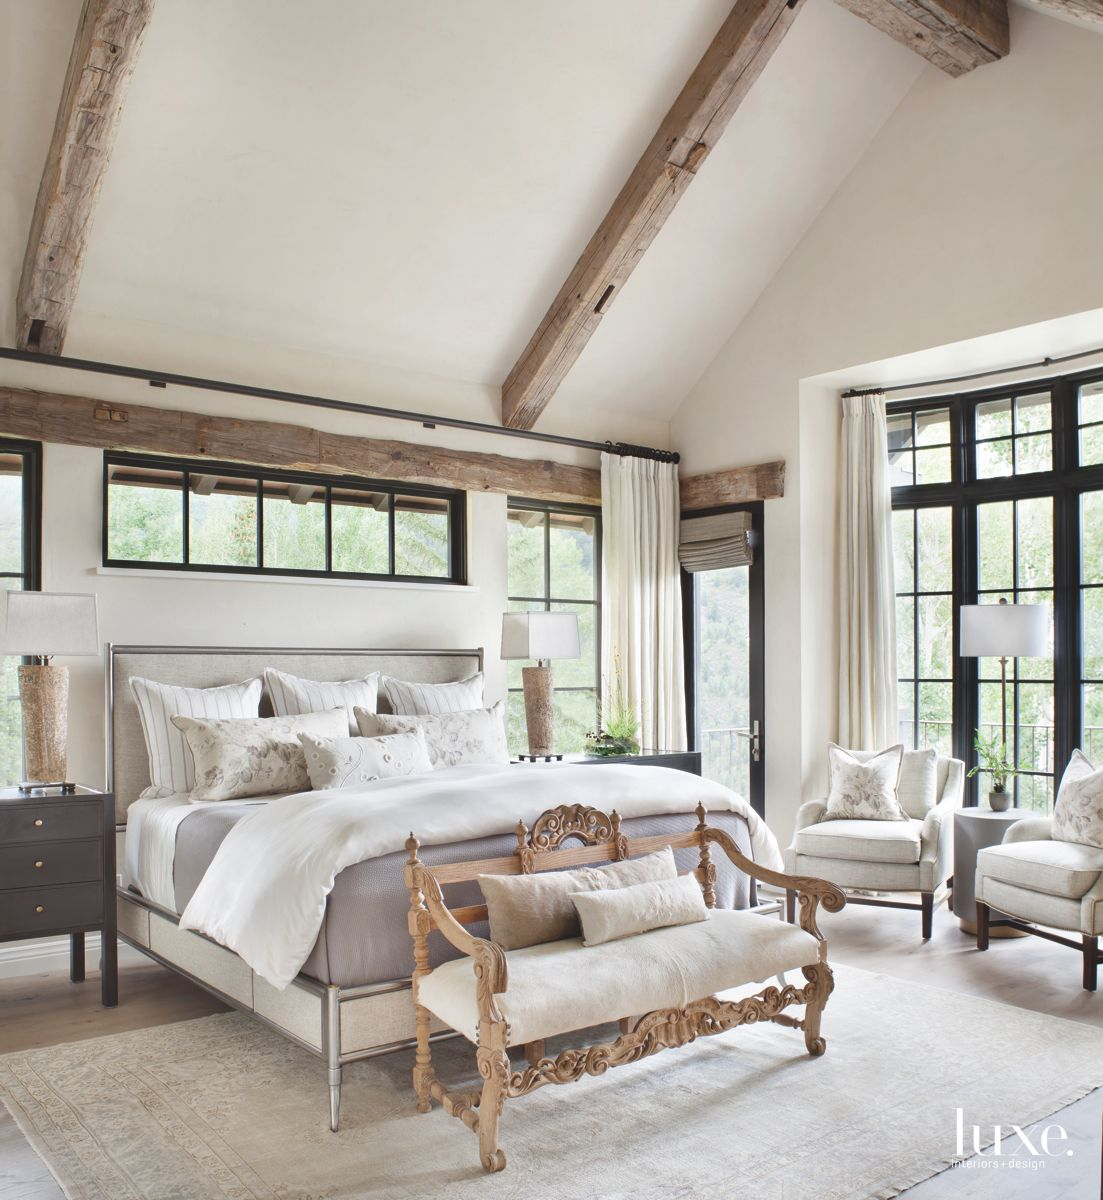 Beam Master Bedroom with High Windows, Bench Loveseat and Wooden Accents